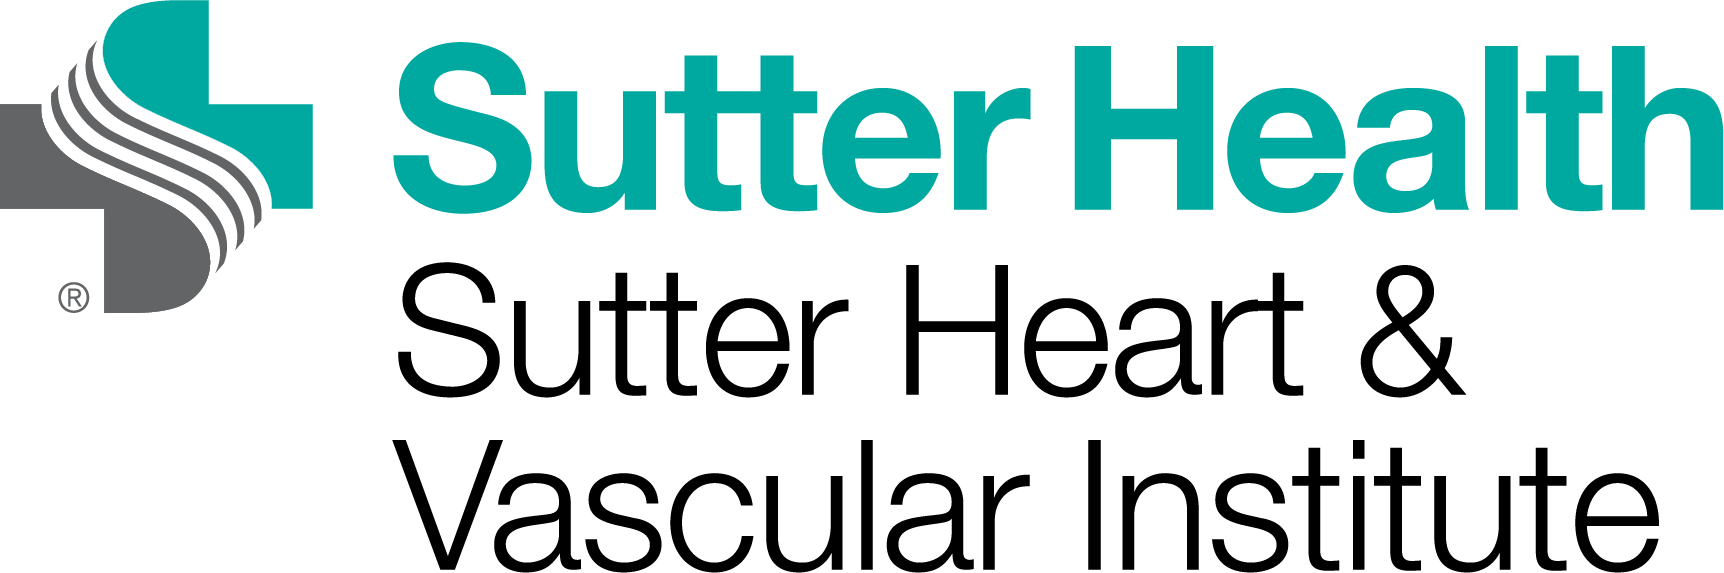 Sutter Heart & Vascular Institute